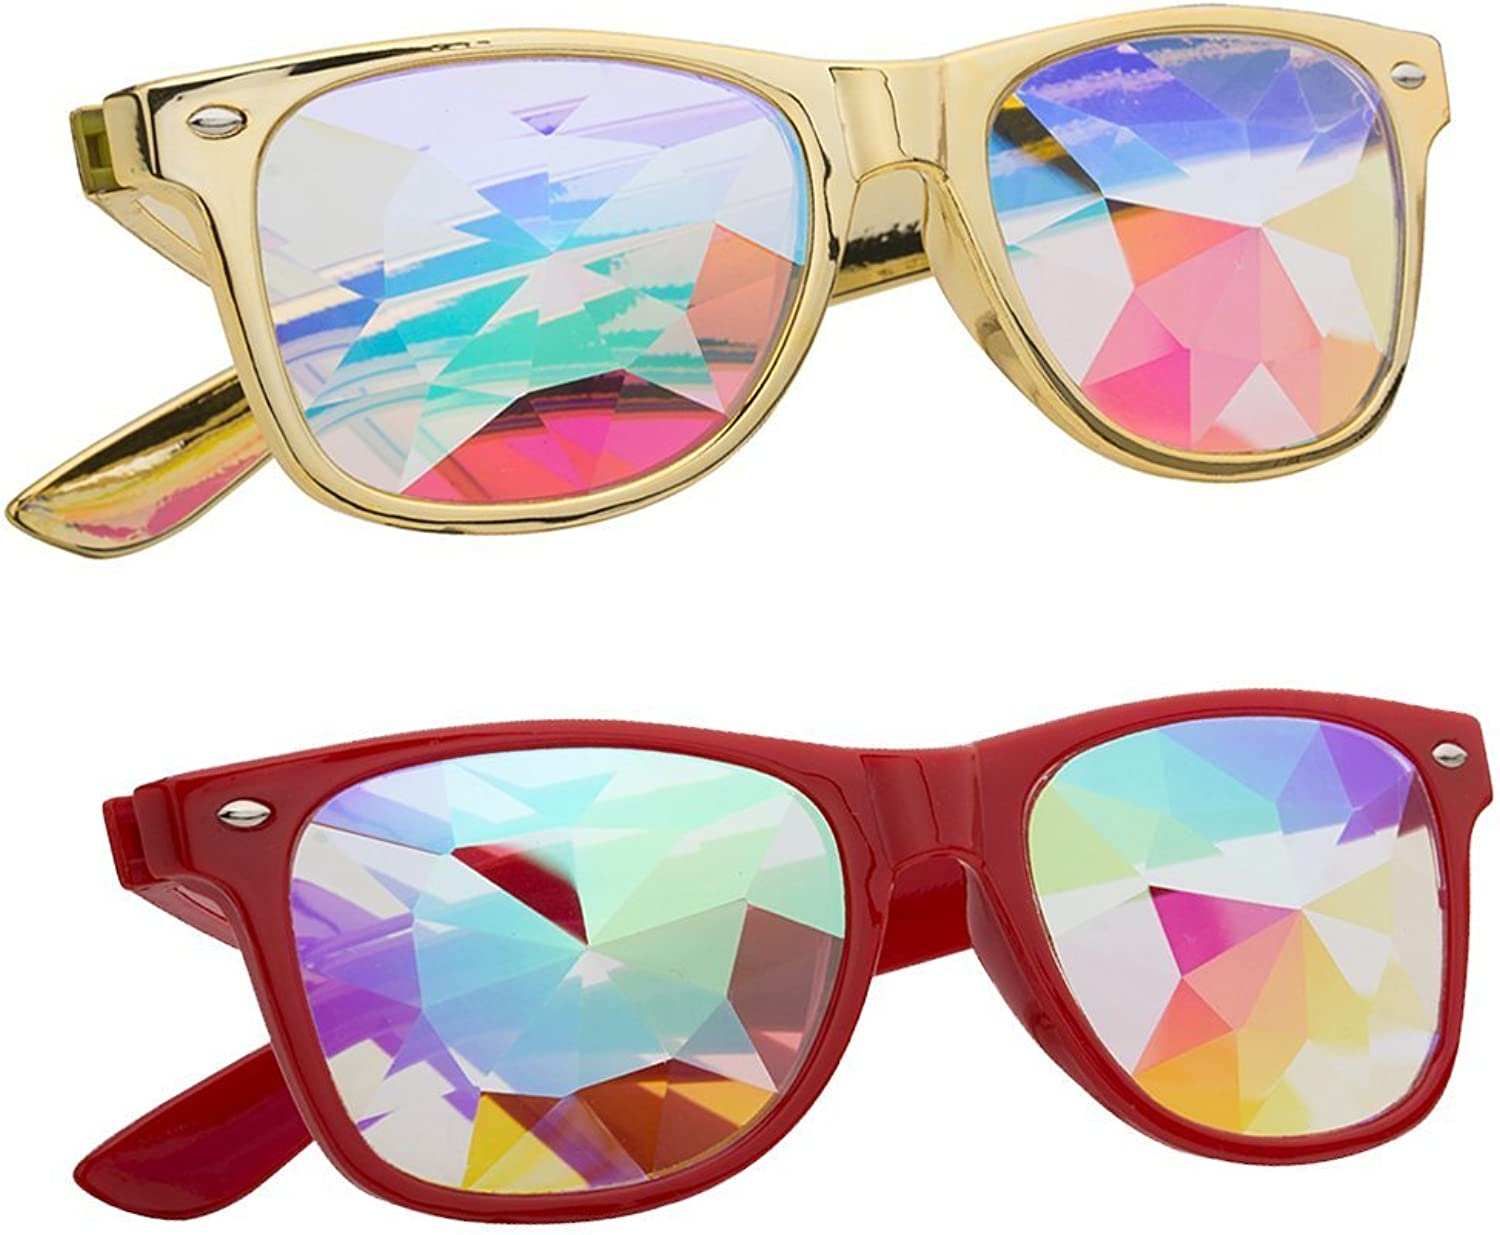 Kaleidoscope Glasses  Rainbow Rave Prism Diffraction Crystal Lens Sunglasses Goggles